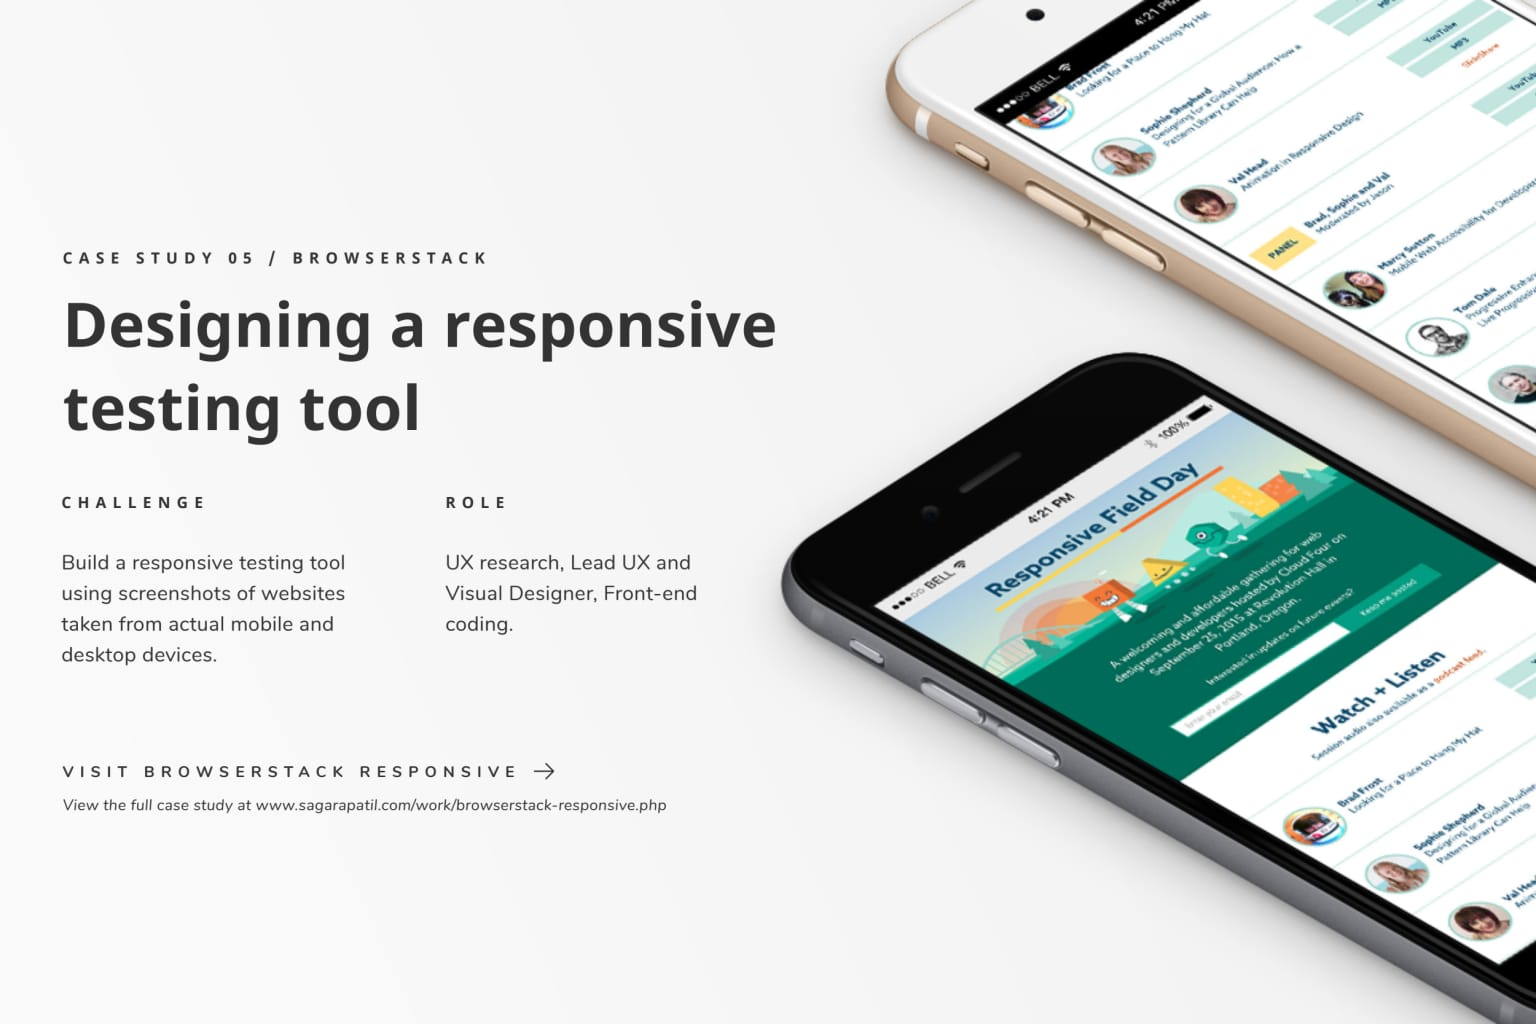 Building a responsive testing tool.